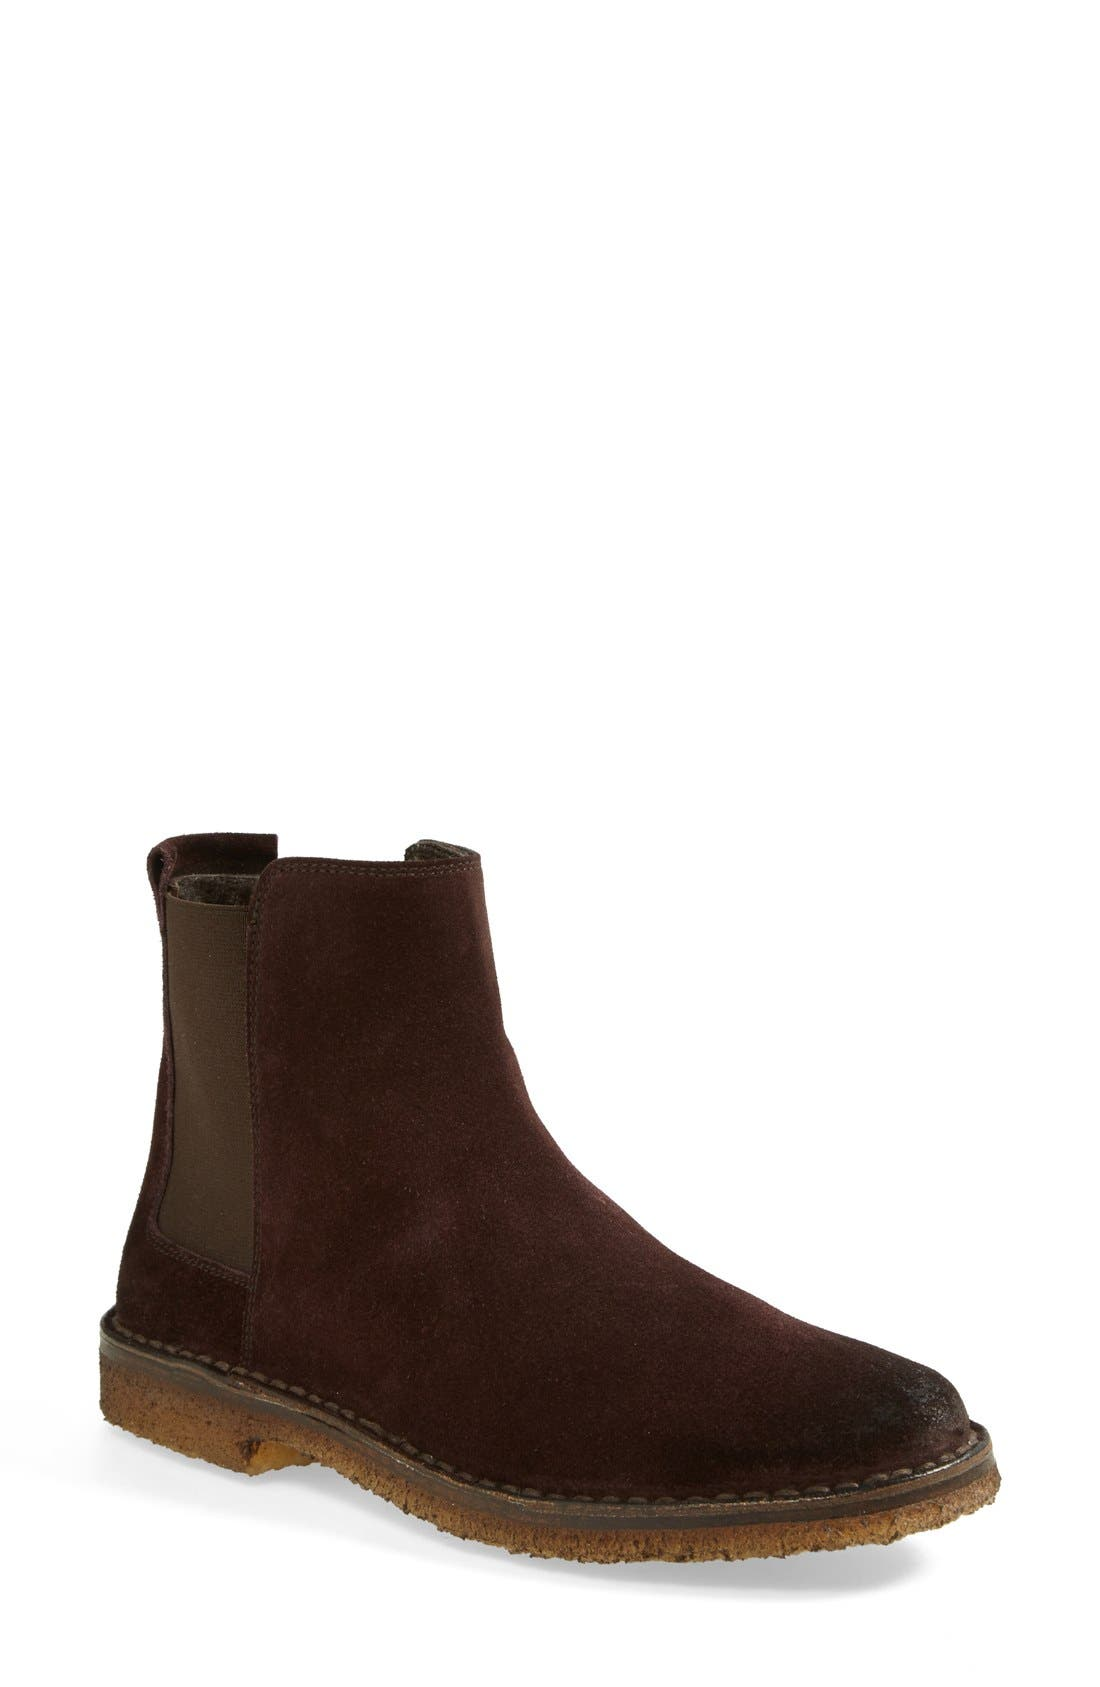 Main Image - Vince 'Cody' Genuine Shearling Lined Chelsea Bootie (Women)